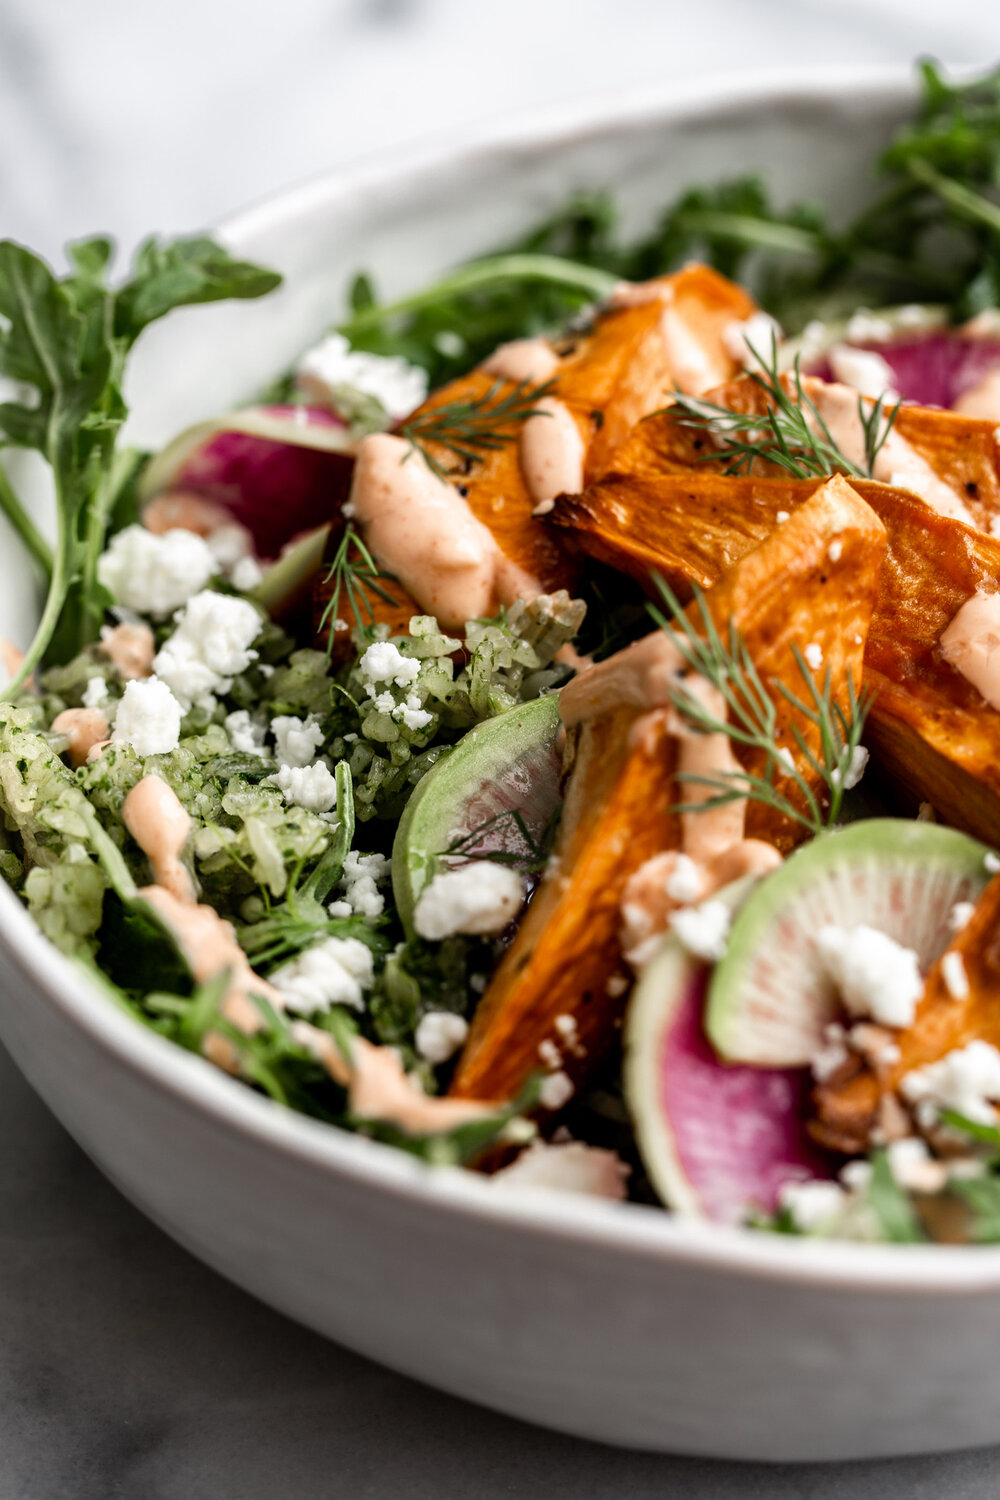 Spicy Green Herbed Crispy Rice Sweet Potato Bowl with Spicy Yogurt-34.jpg